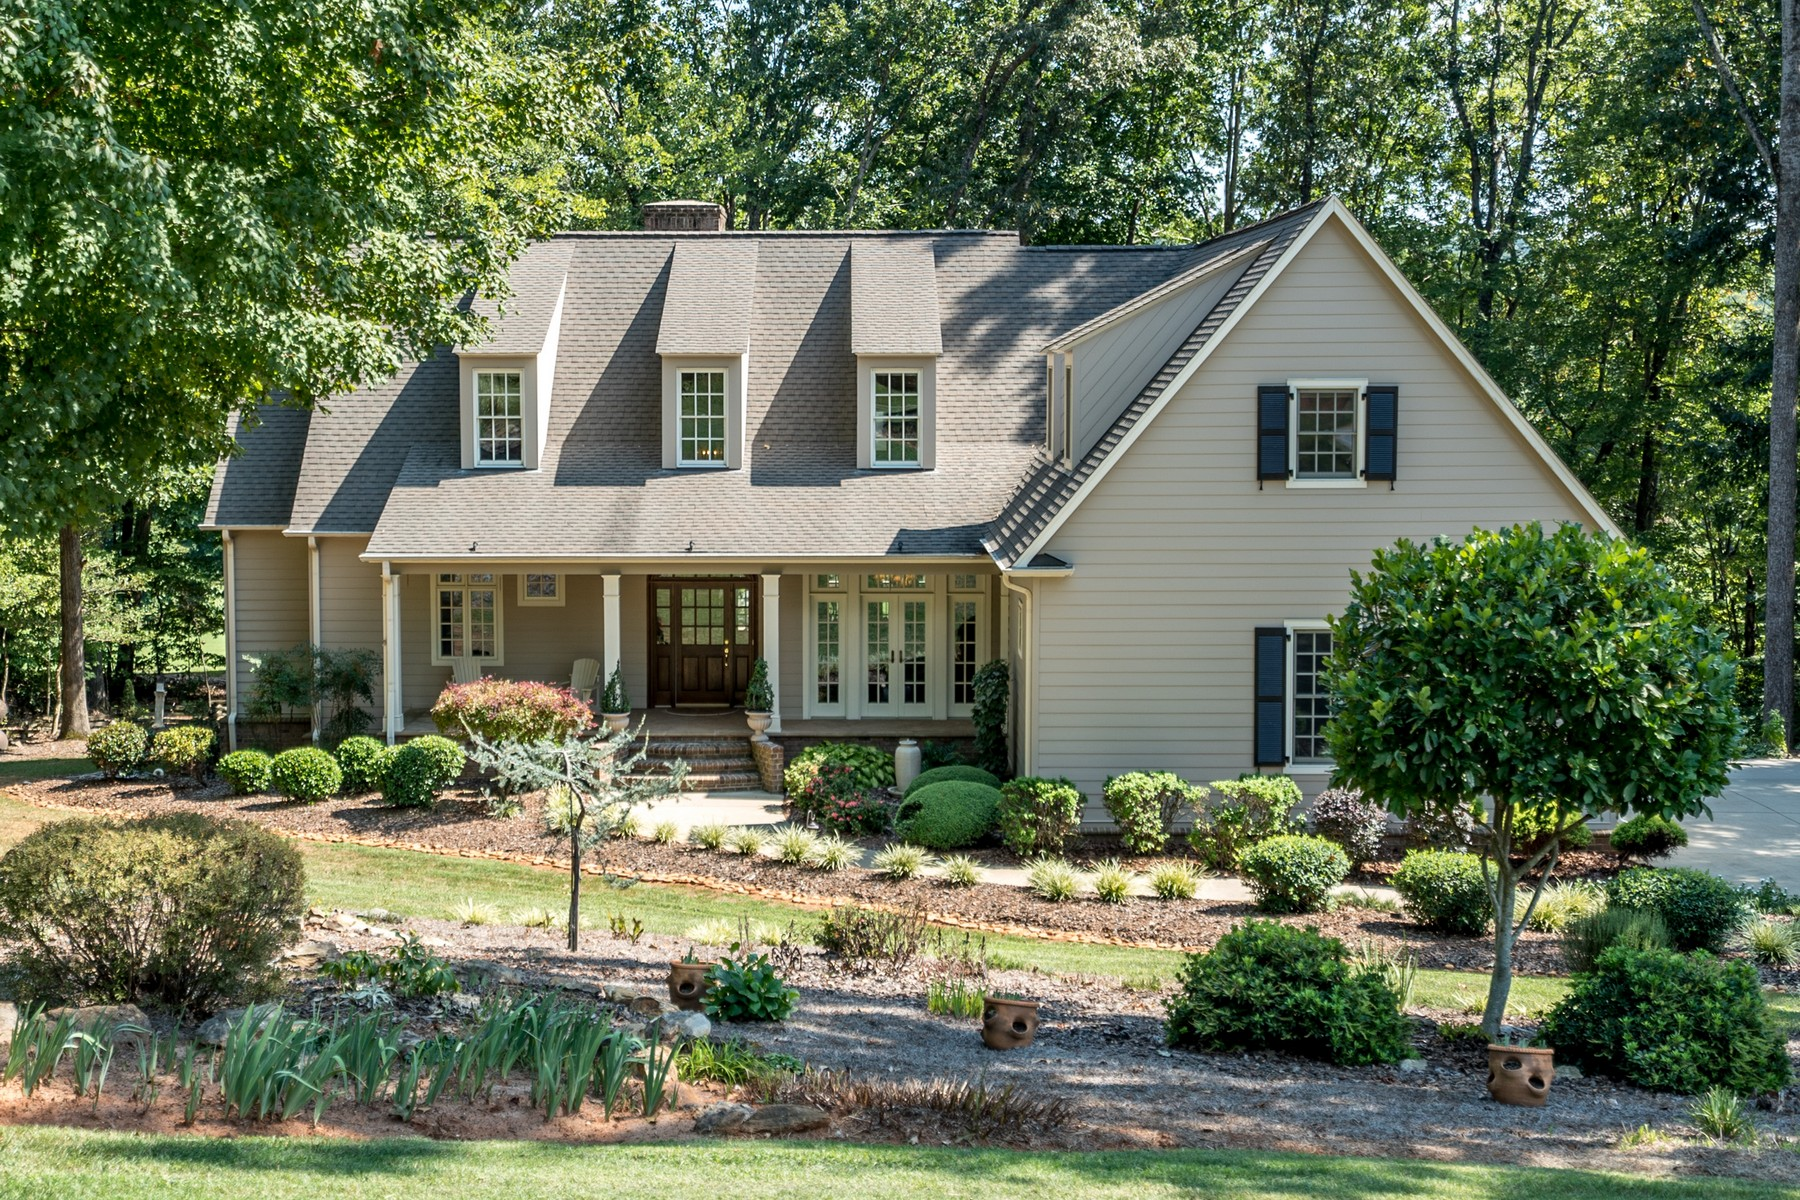 Single Family Home for Sale at 2235 Stone Bridge 2235 Stone Bridge Road Asheboro, North Carolina 27205 United StatesIn/Around: Cary, Greensboro, Chapel Hill